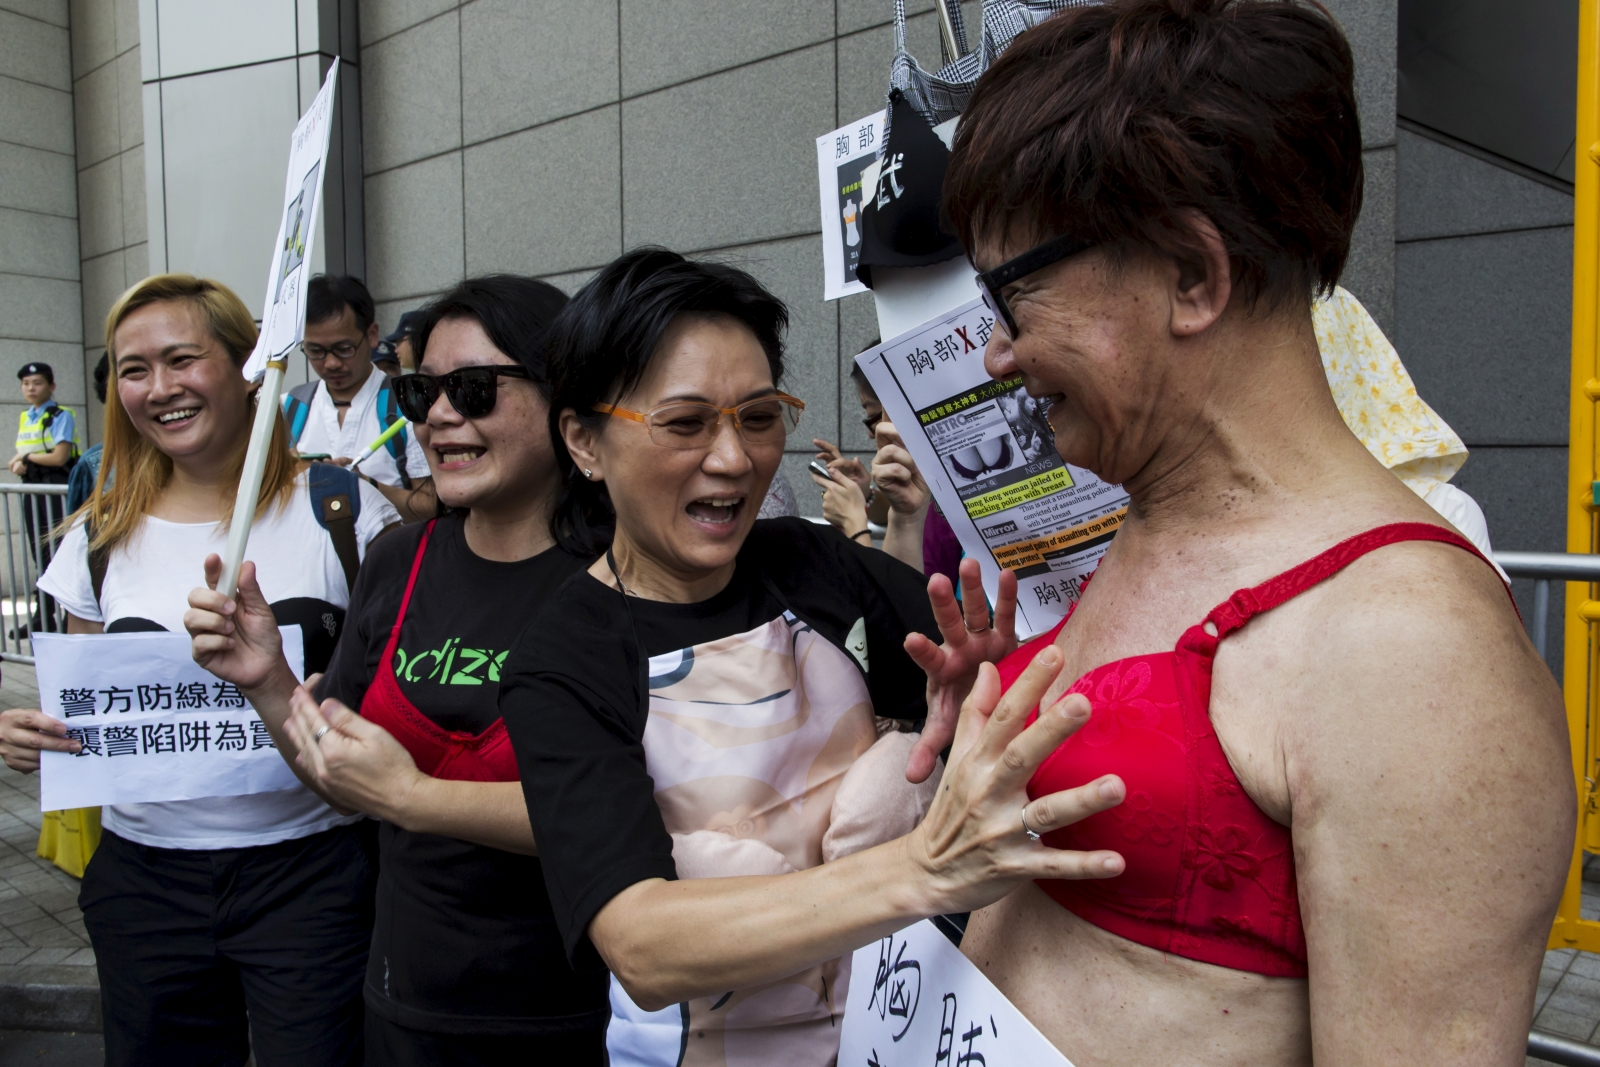 Protesters wear bras in Hong Kong